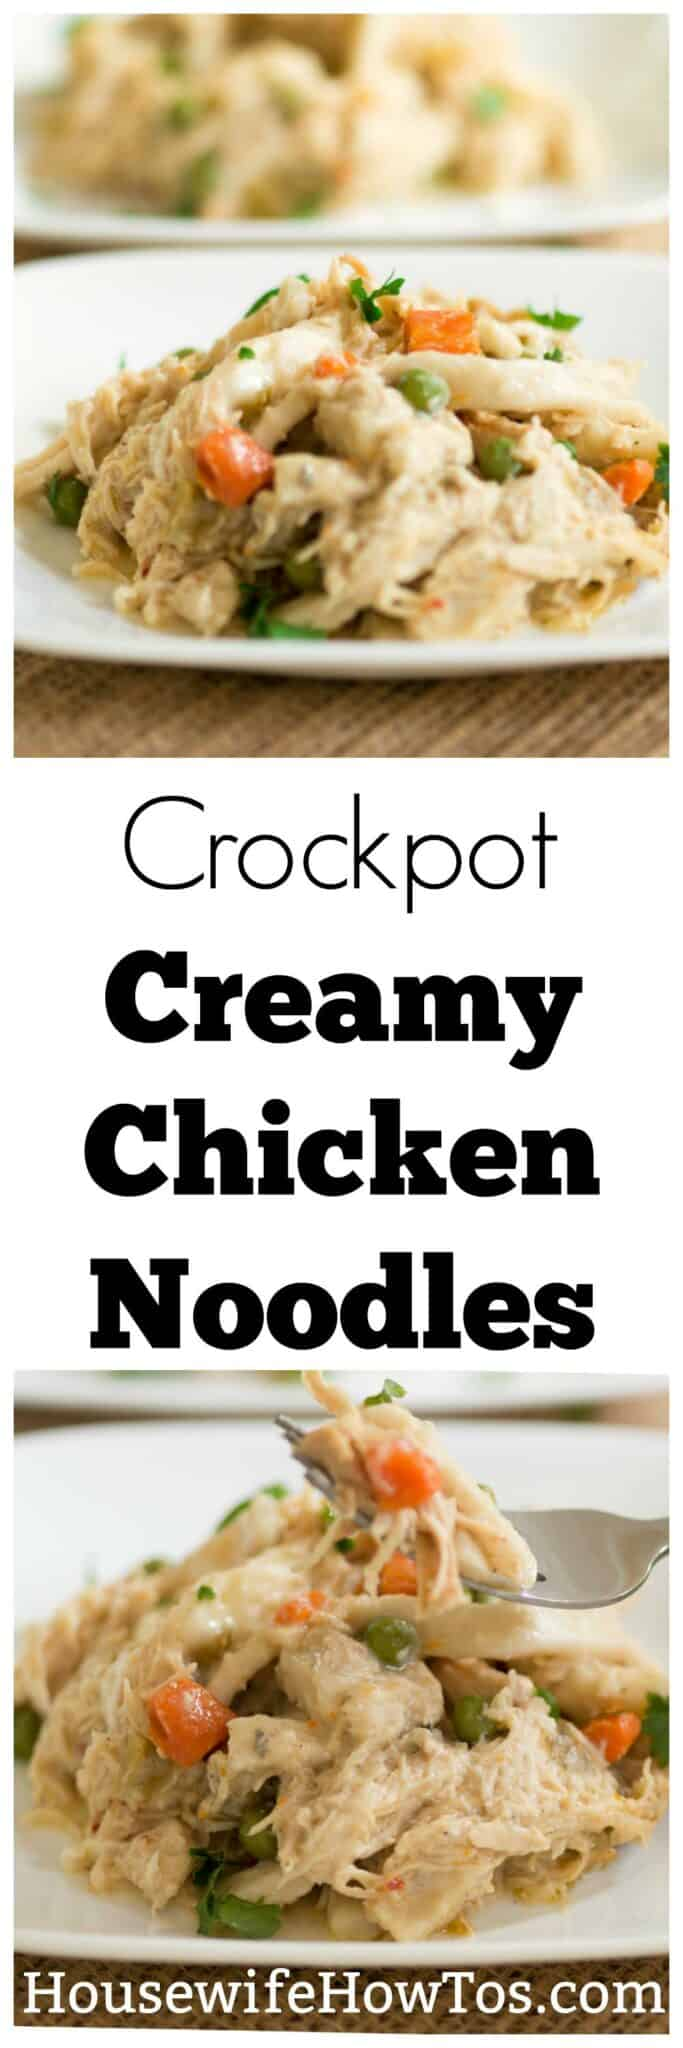 Crockpot Creamy Chicken Noodles Recipe | Seasoned chicken, vibrant vegetables, and tender noodles in an easy, creamy sauce. | #crockpotrecipe #comfortfood